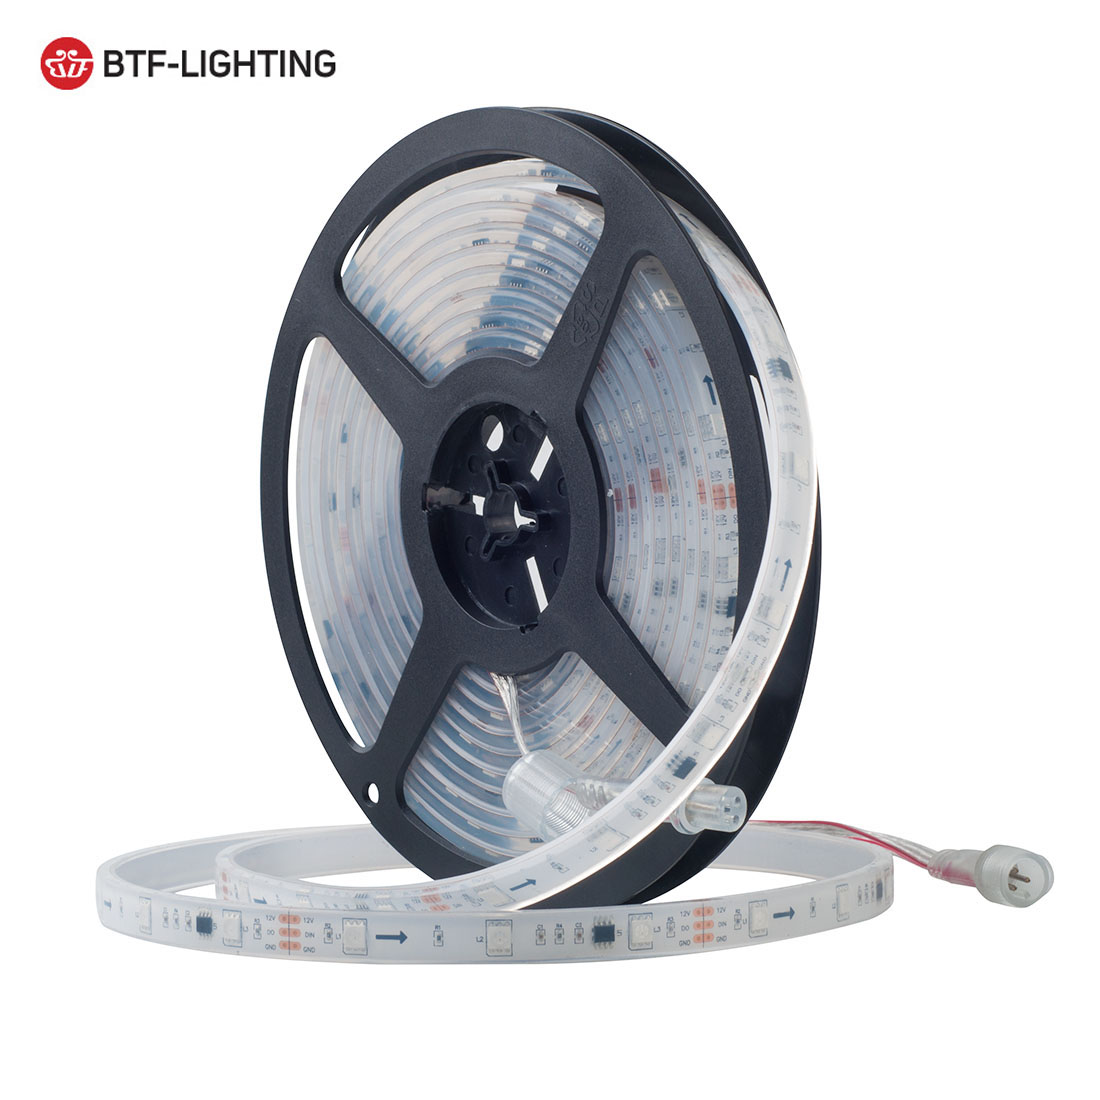 Lights & Lighting Fine 5m Ws2811 Led Strip Dc12v Ultra Bright 5050 Smd Rgb Led Addressable 30/60led/m Connector In Silicone Packaging Better Waterproof To Have A Unique National Style